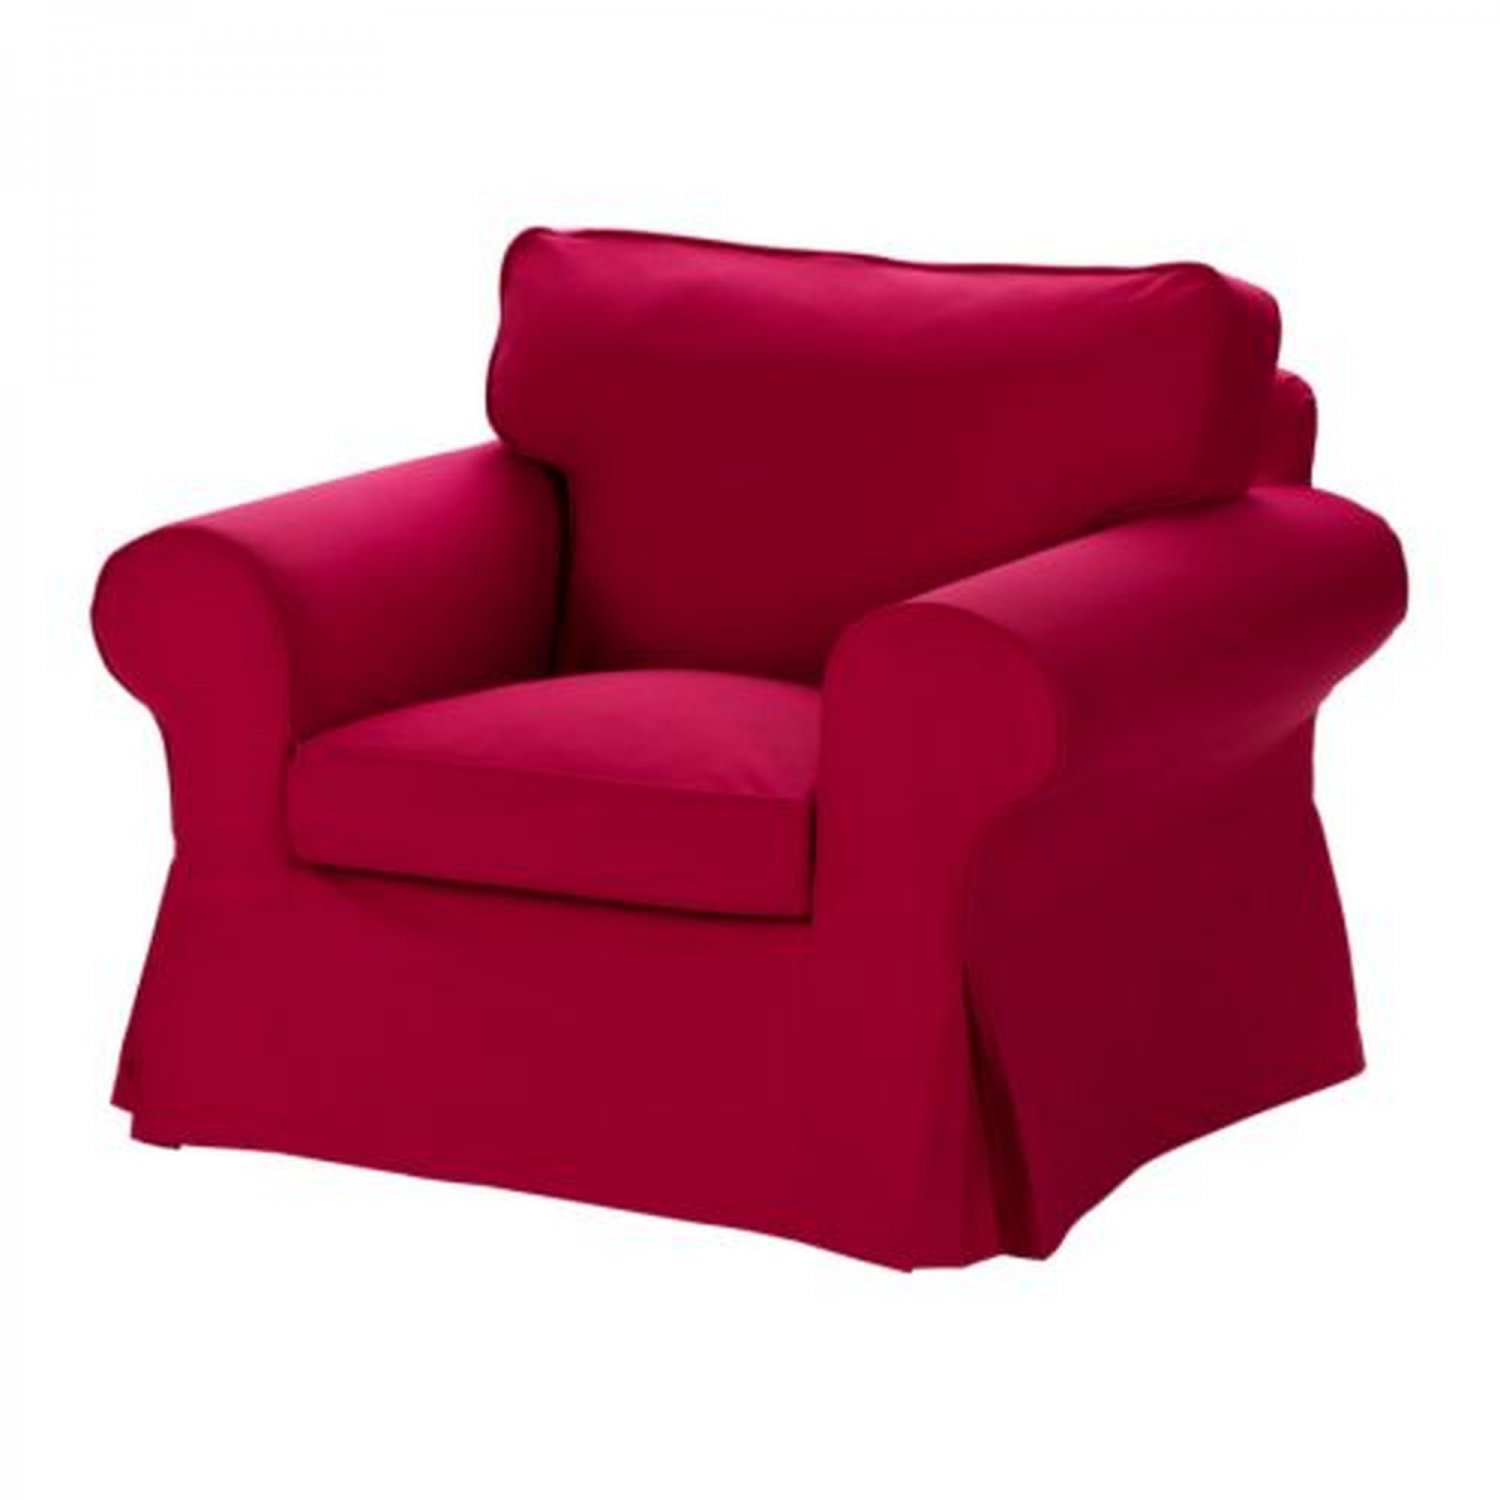 ikea ektorp armchair slipcover chair cover idemo red new. Black Bedroom Furniture Sets. Home Design Ideas